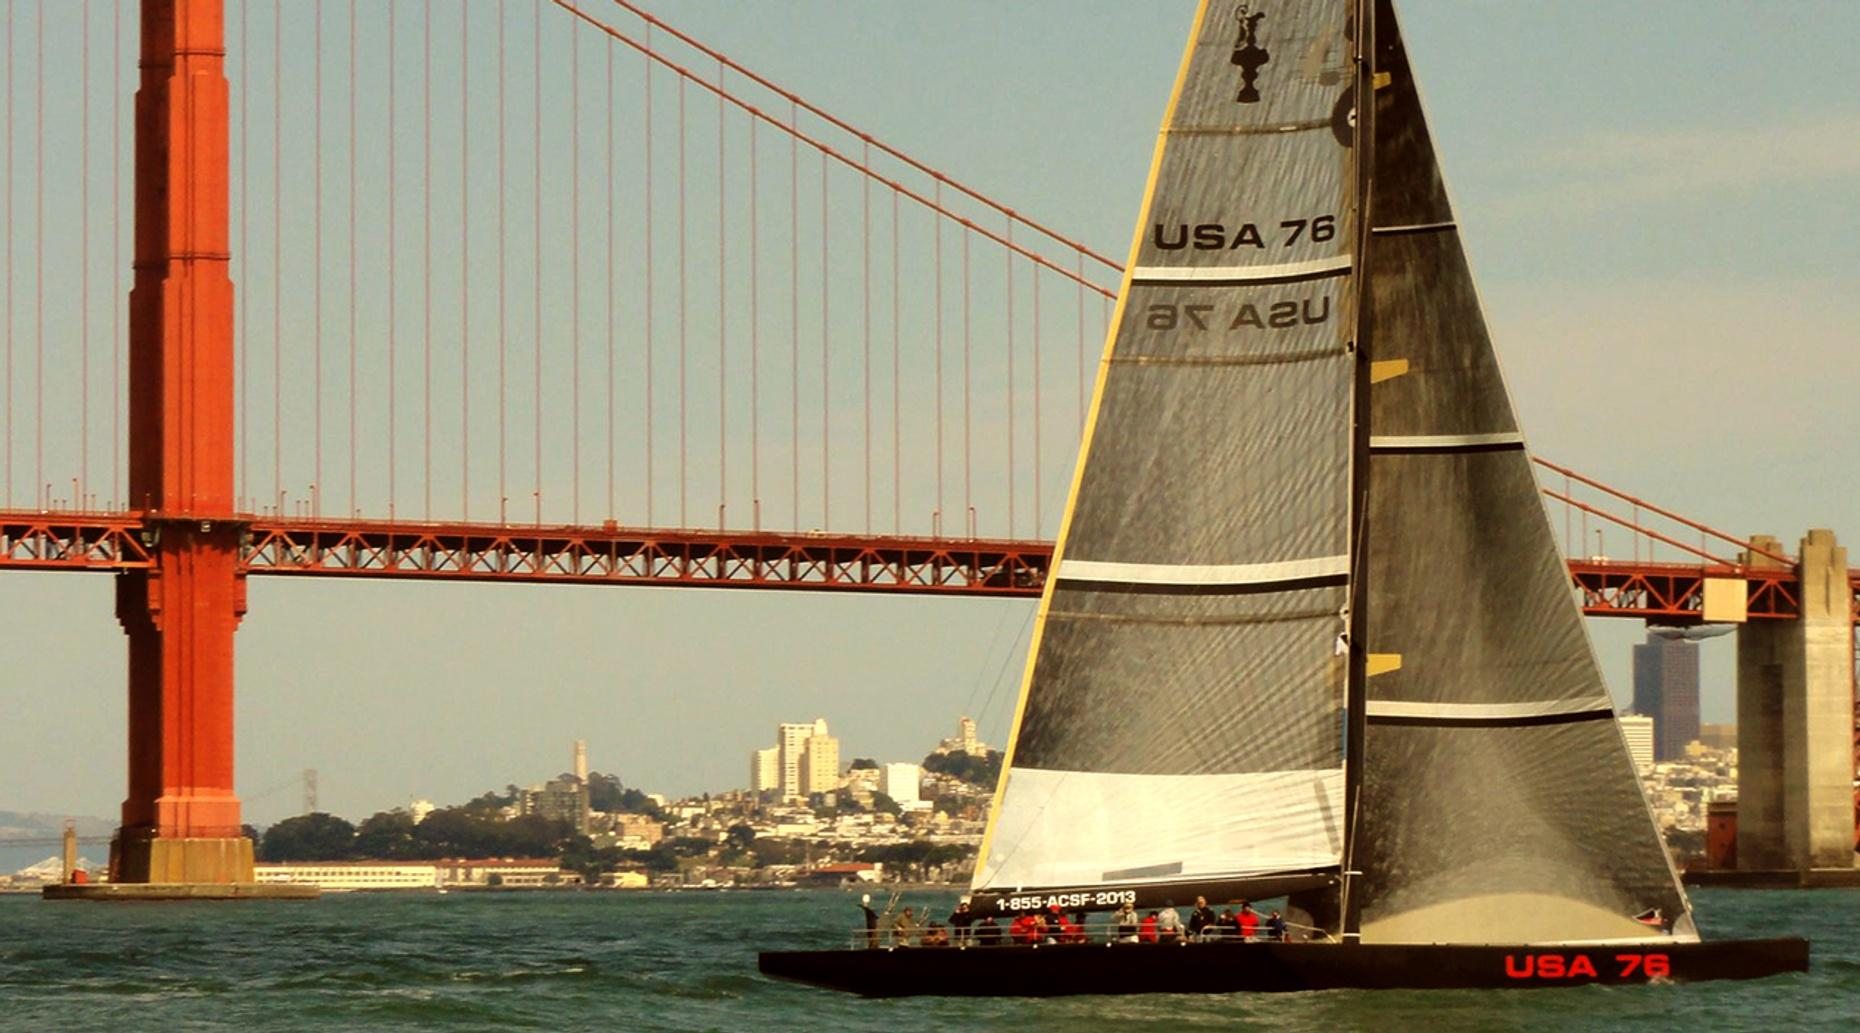 San Francisco Bay Sunset Sail on on the USA 76